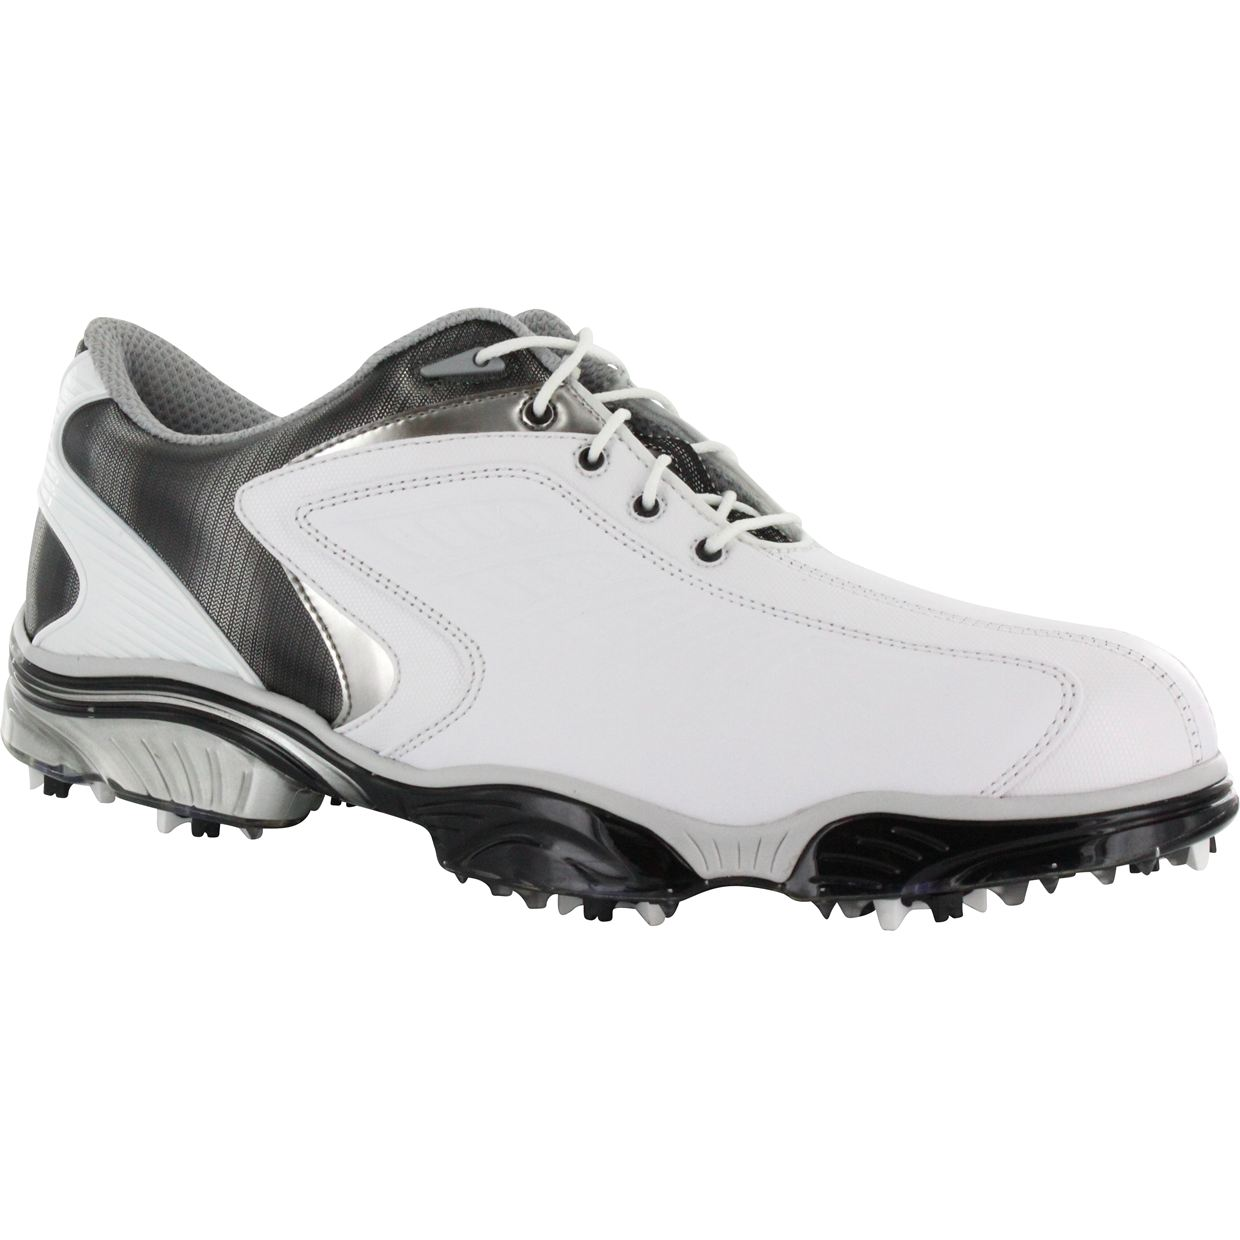 footjoy fj sport golf shoes at globalgolf